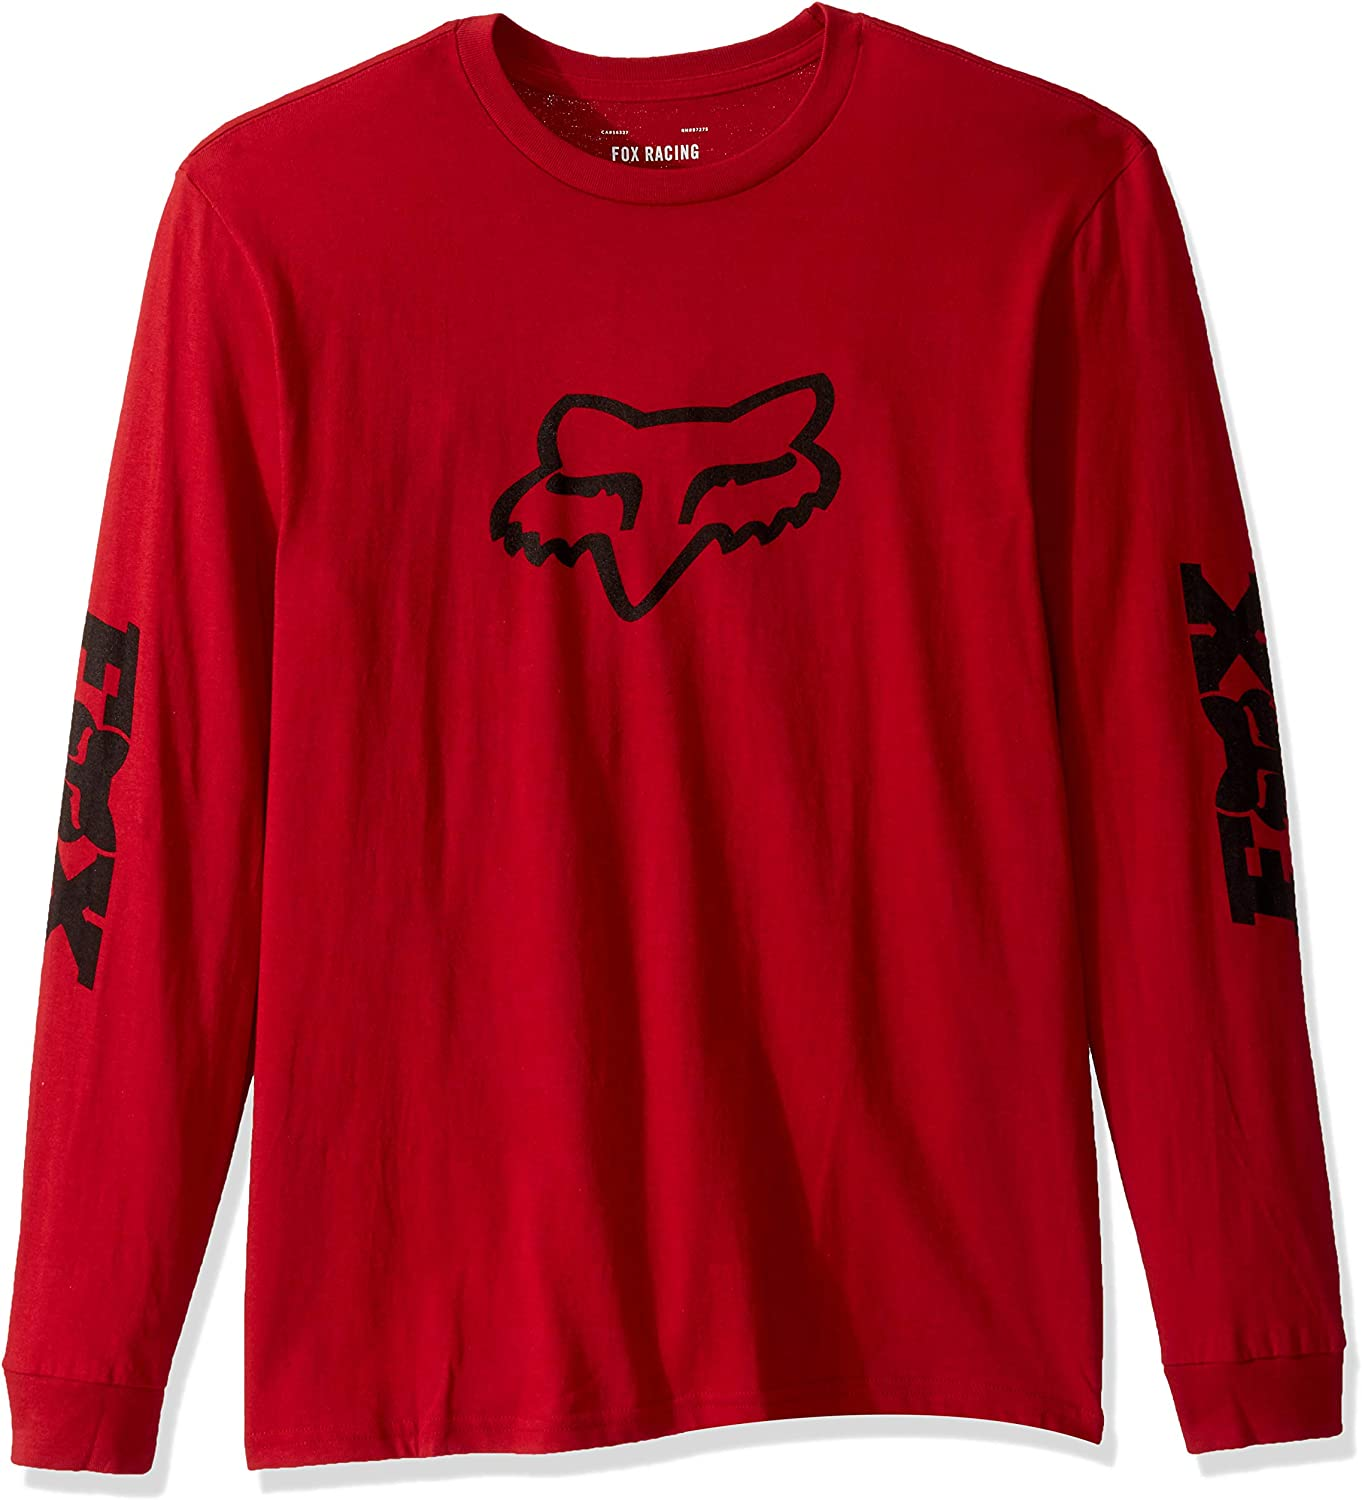 Fox Racing Men's Long Sleeve T-Shrit